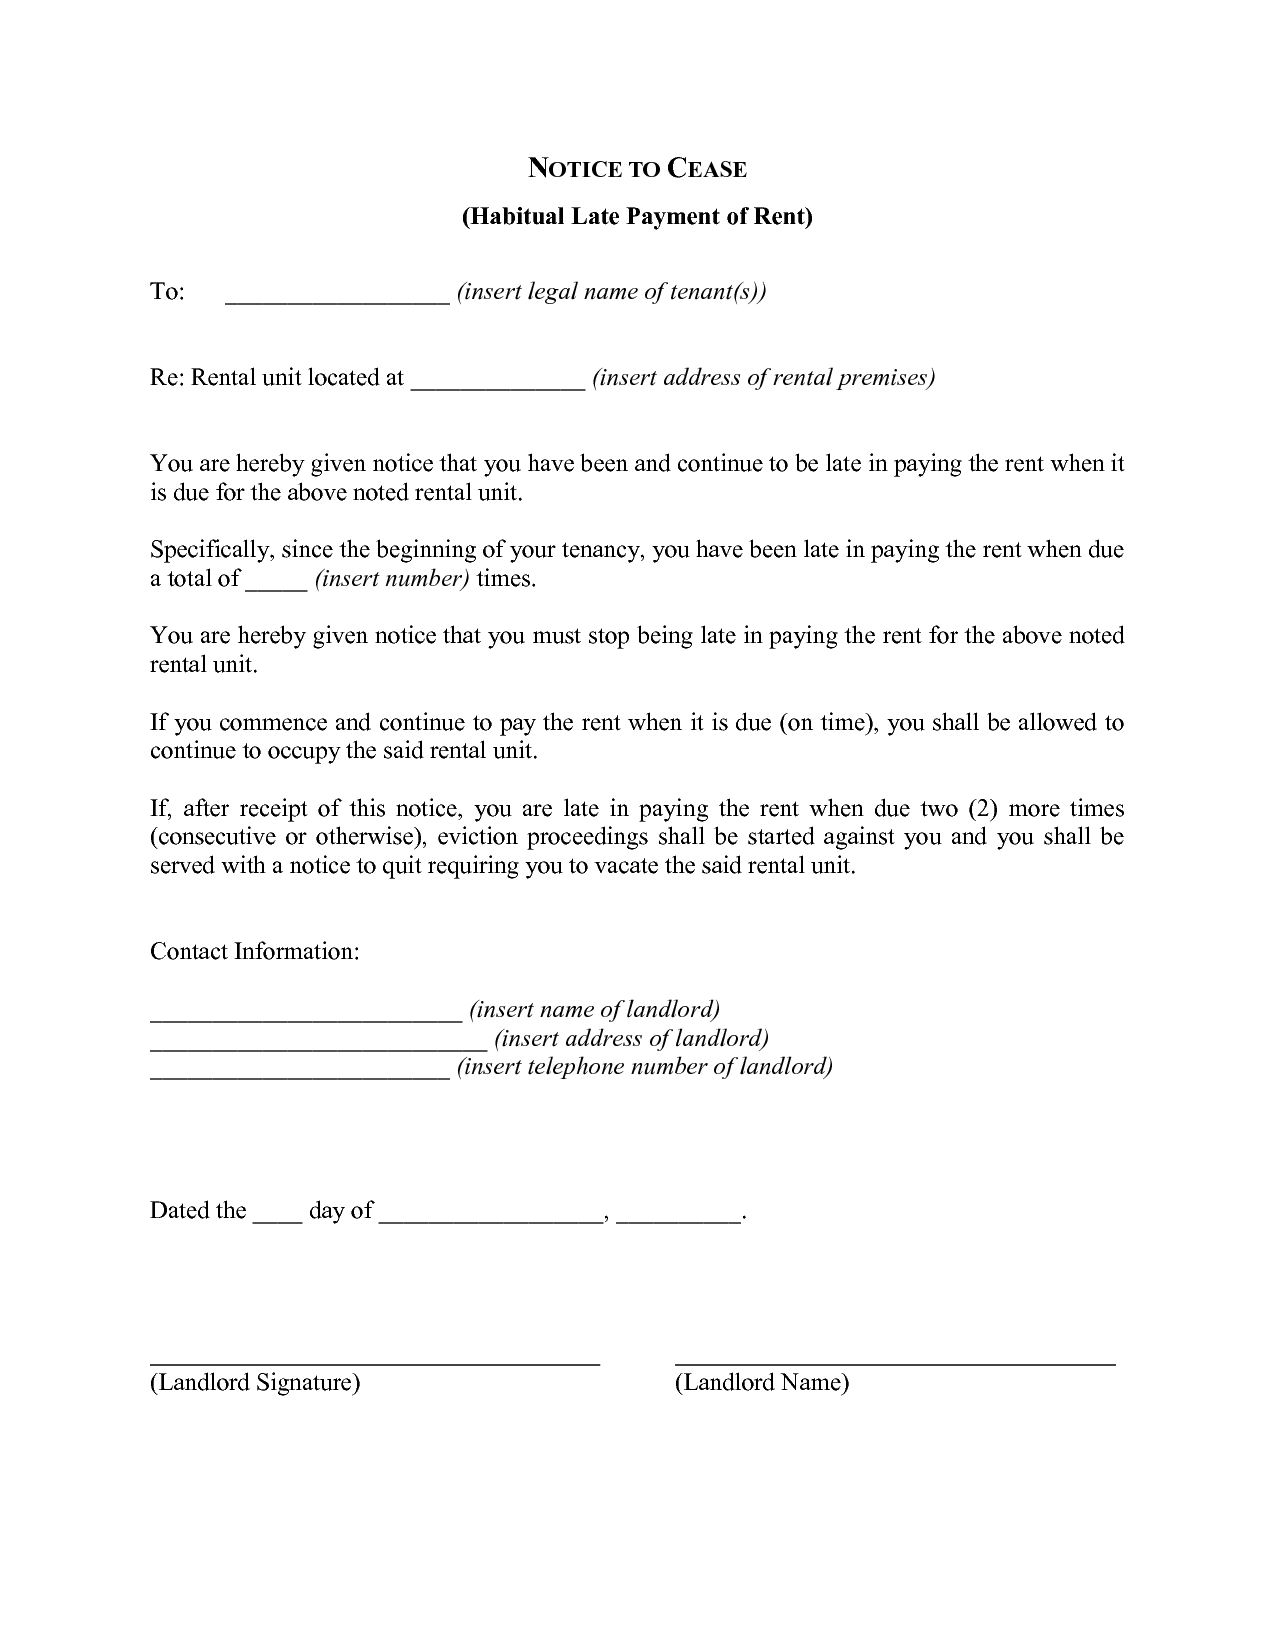 Late Rent Notice Free Printable Documents